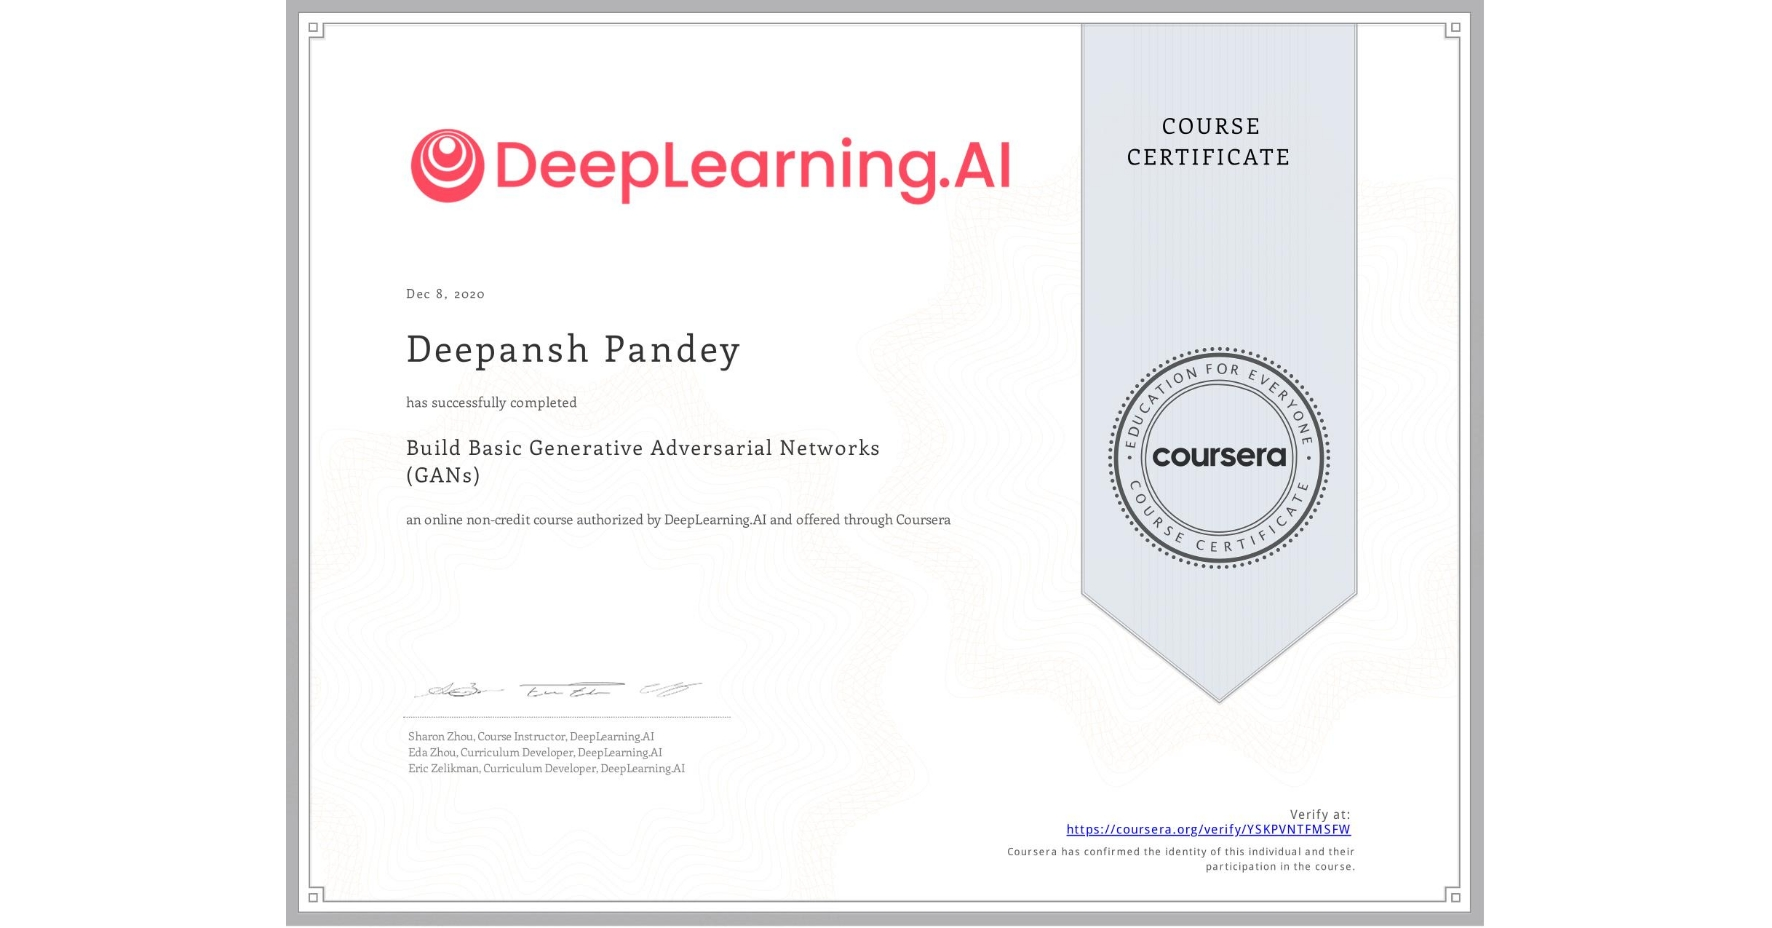 View certificate for Deepansh Pandey, Build Basic Generative Adversarial Networks (GANs), an online non-credit course authorized by DeepLearning.AI and offered through Coursera